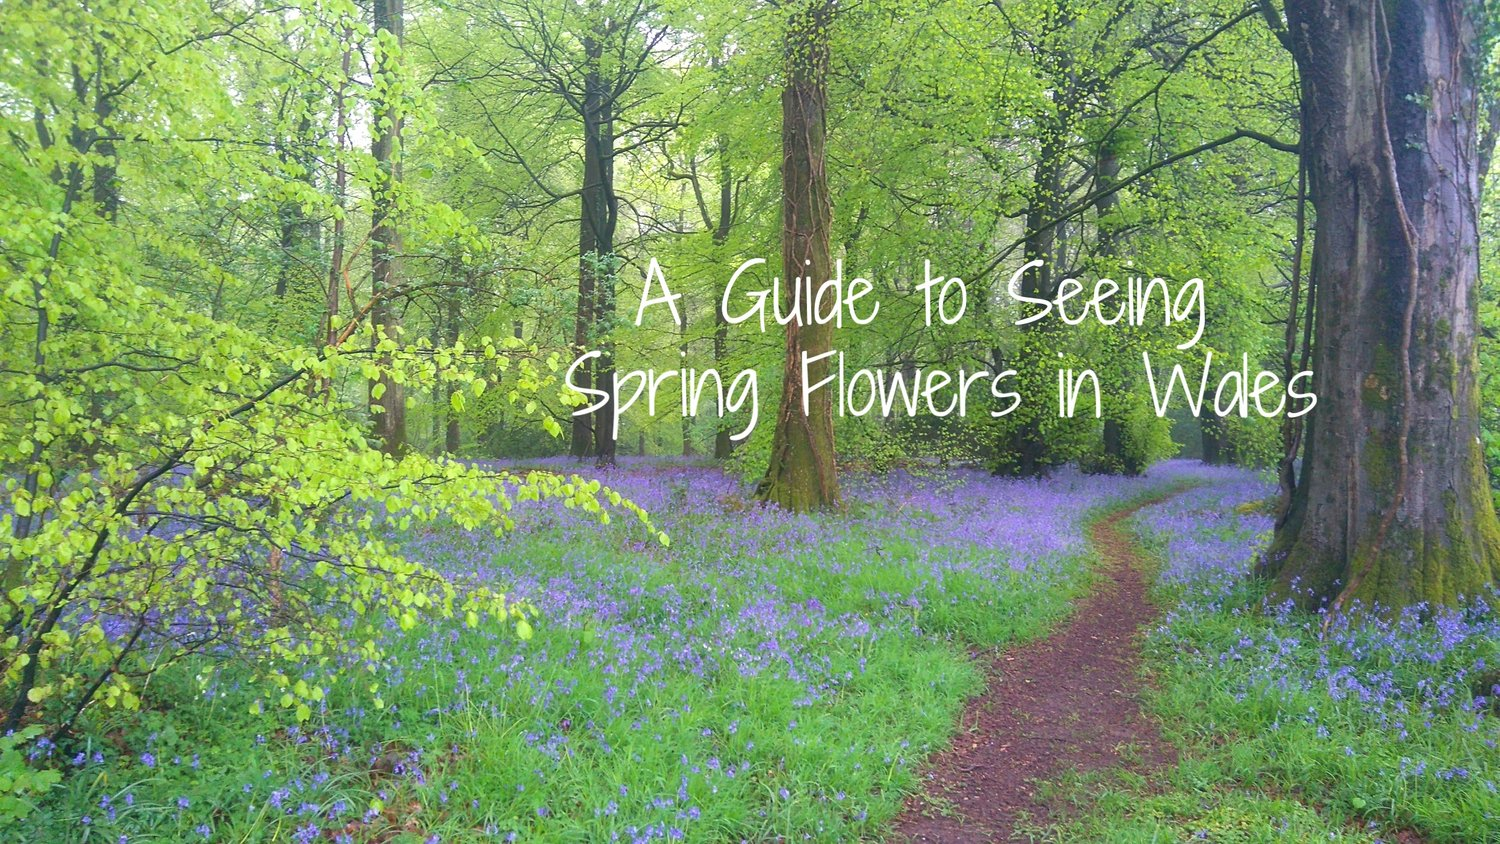 A Guide To Seeing Spring Flowers In Wales Real Wales Tours